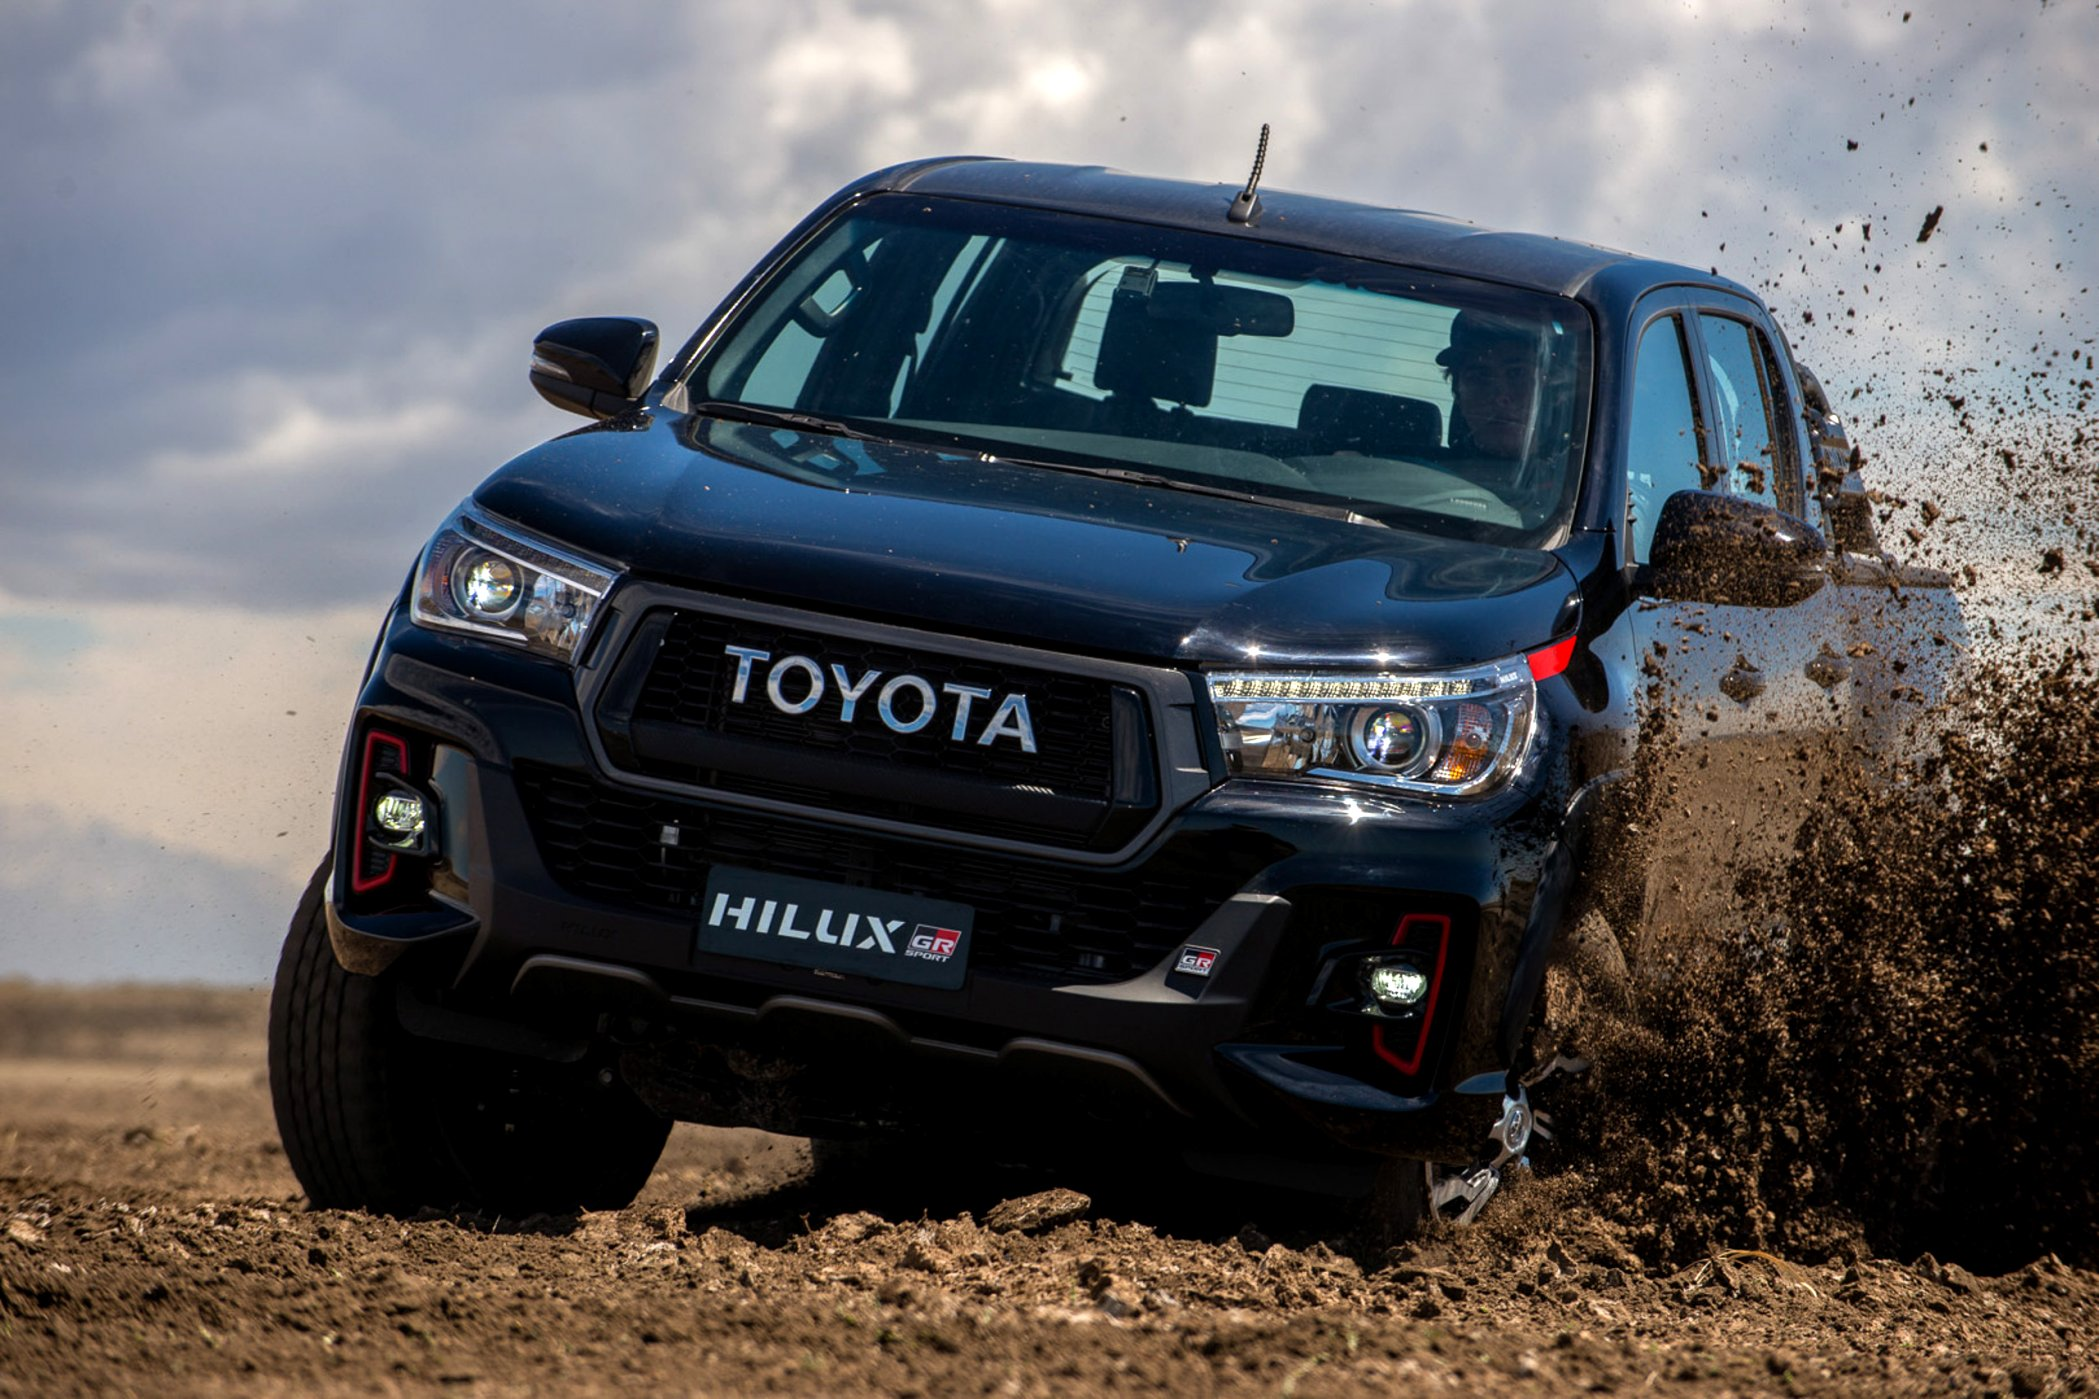 toyota hilux 2020 price philippines Price, Design and Review